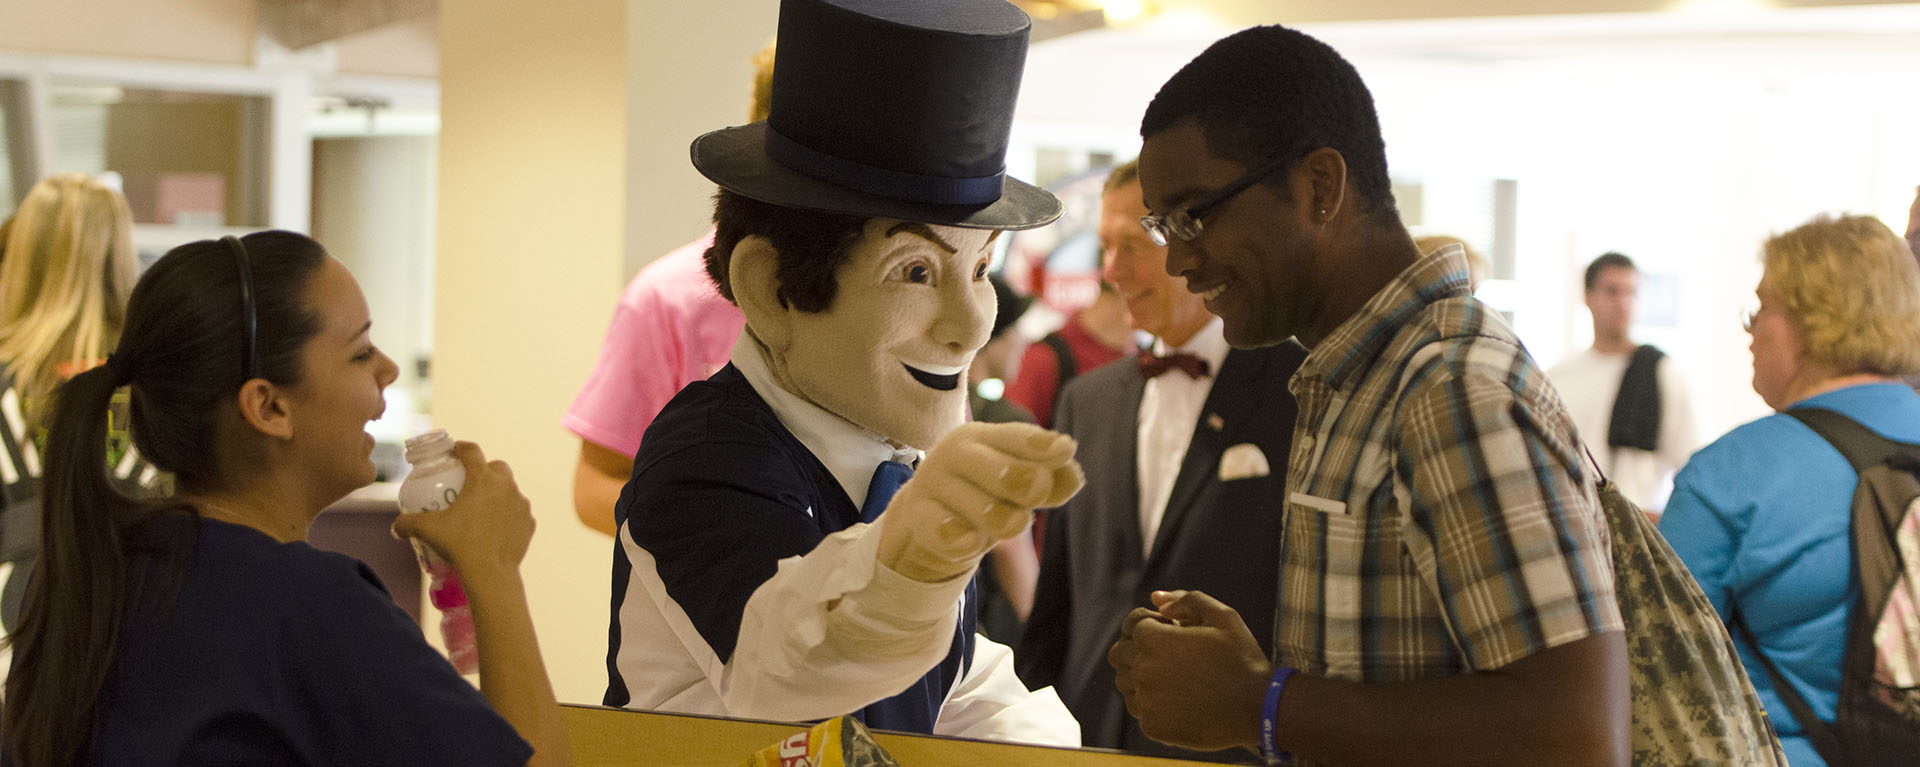 Mr. Ichabod mascot interacting with students